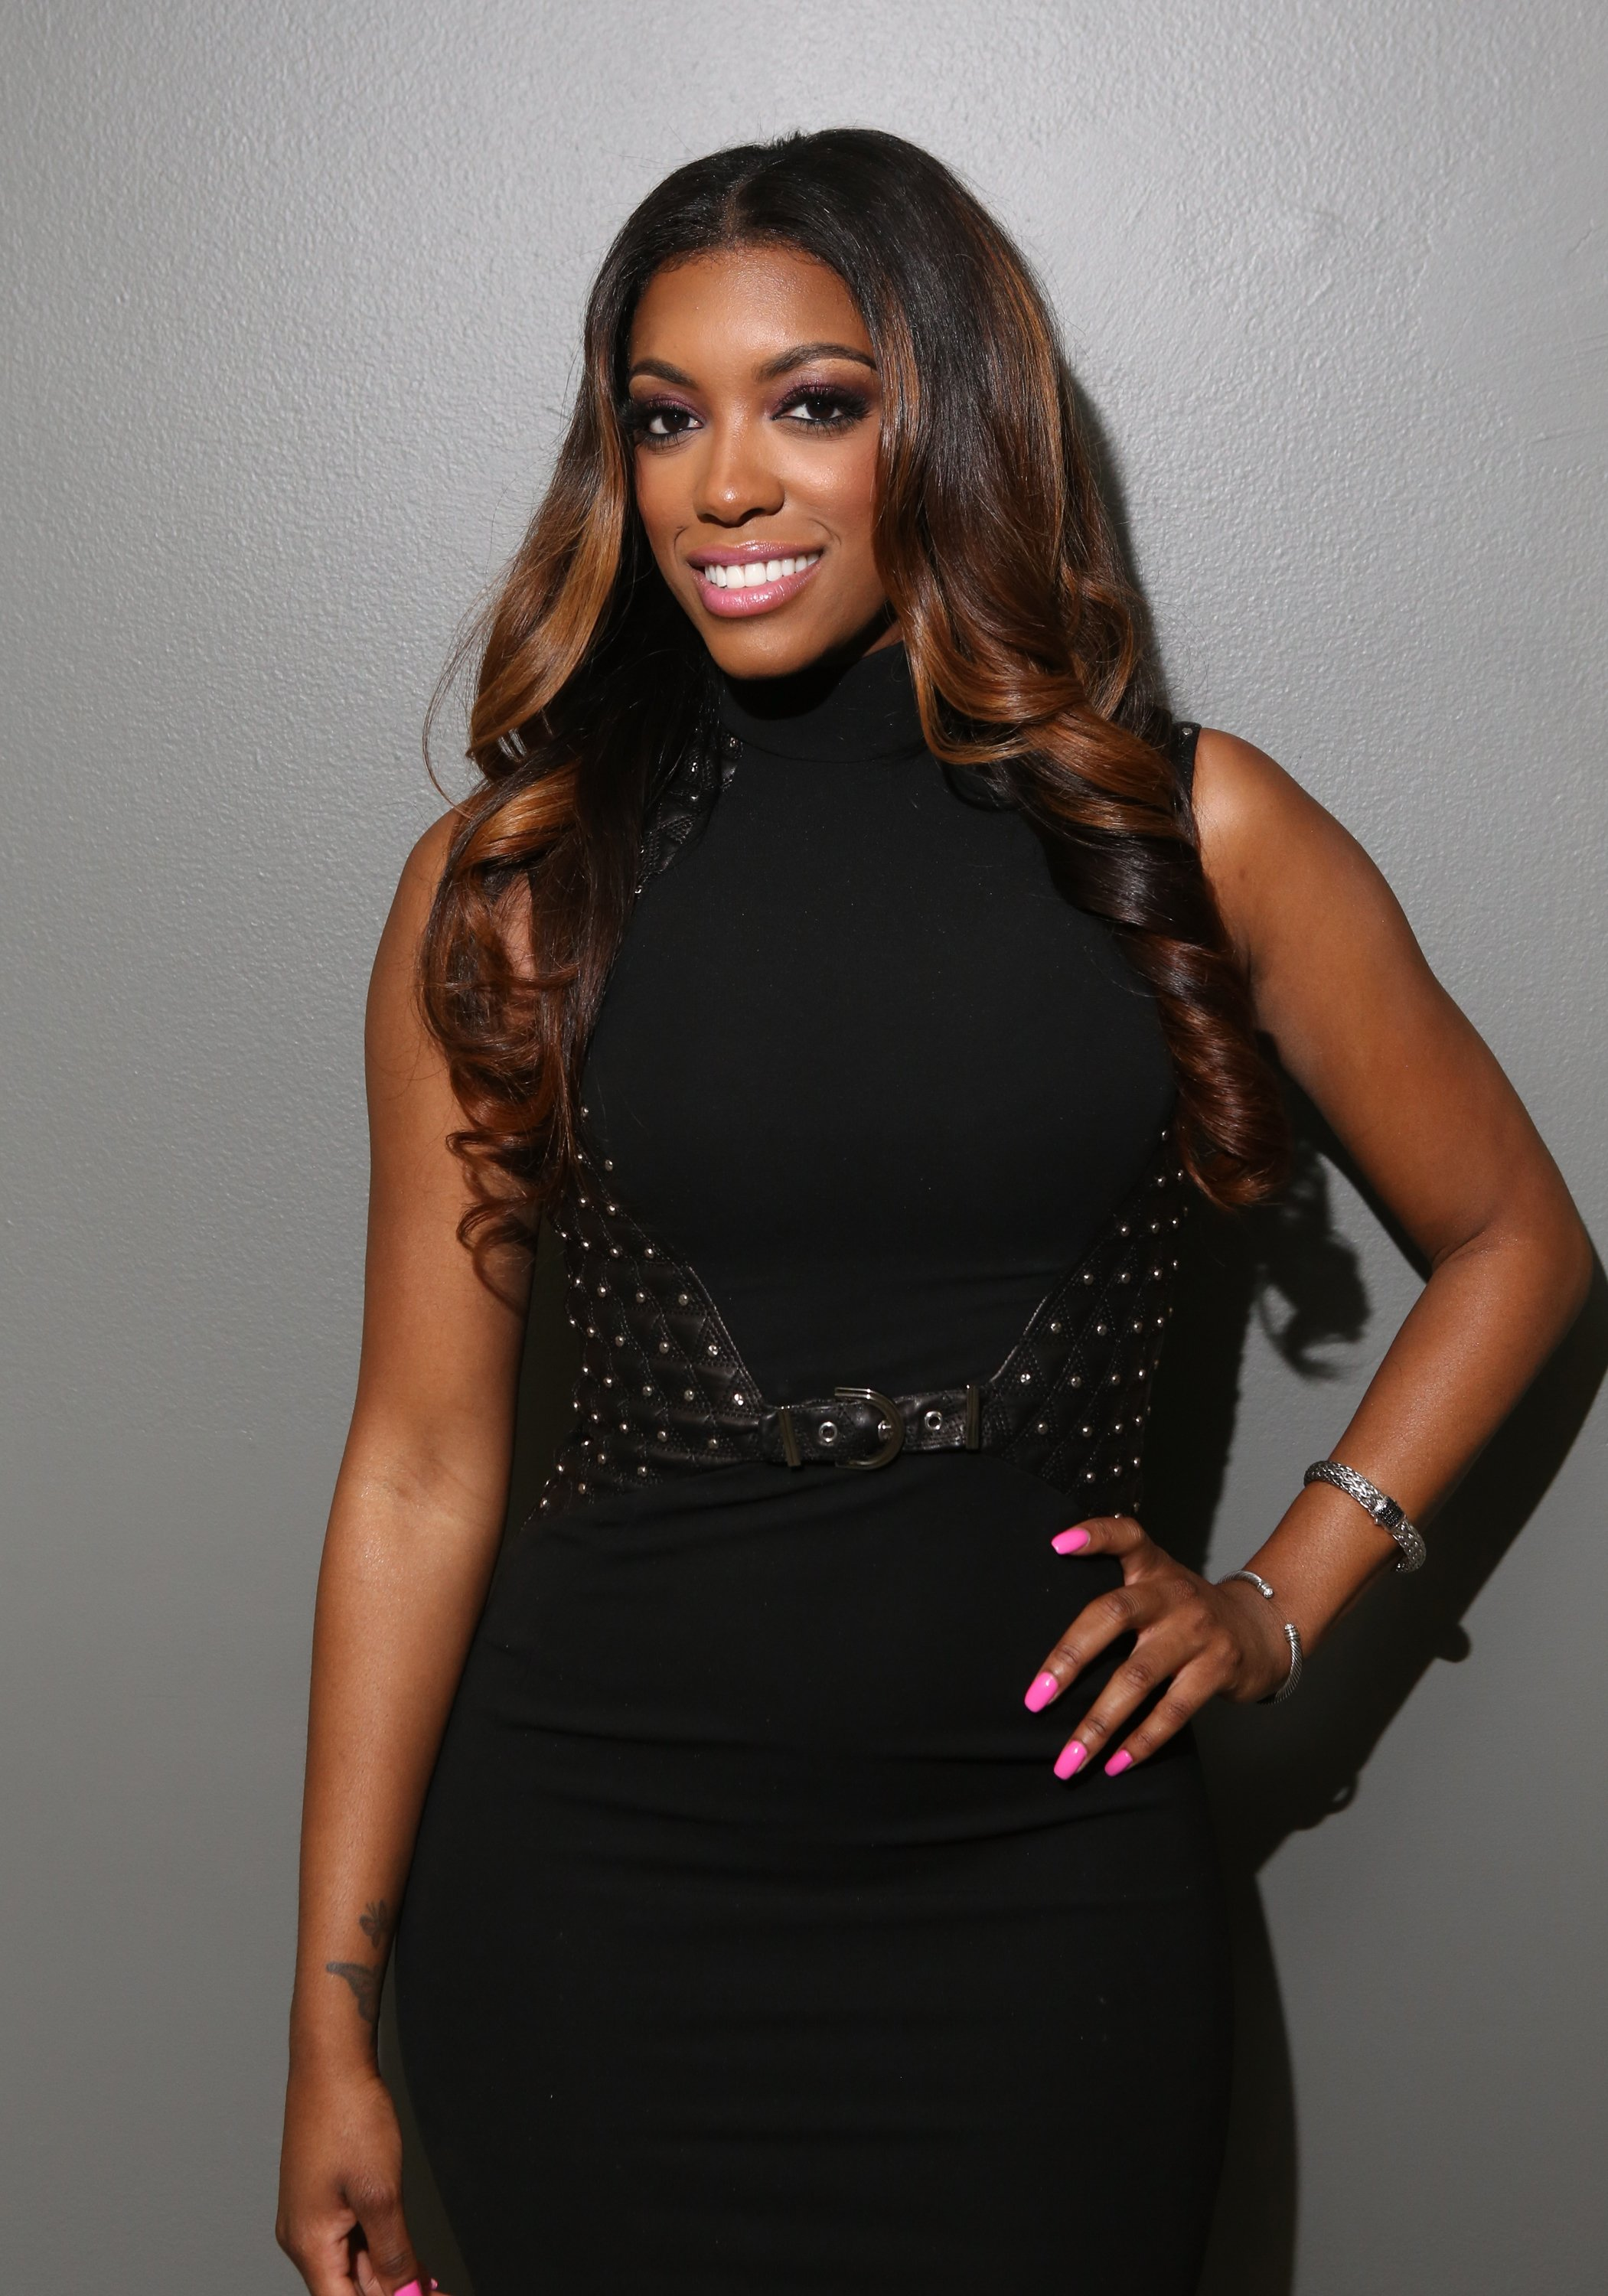 Porsha Williams visits 106 & Park at BET studio on June 9, 2014 in New York City | Photo: Getty Images